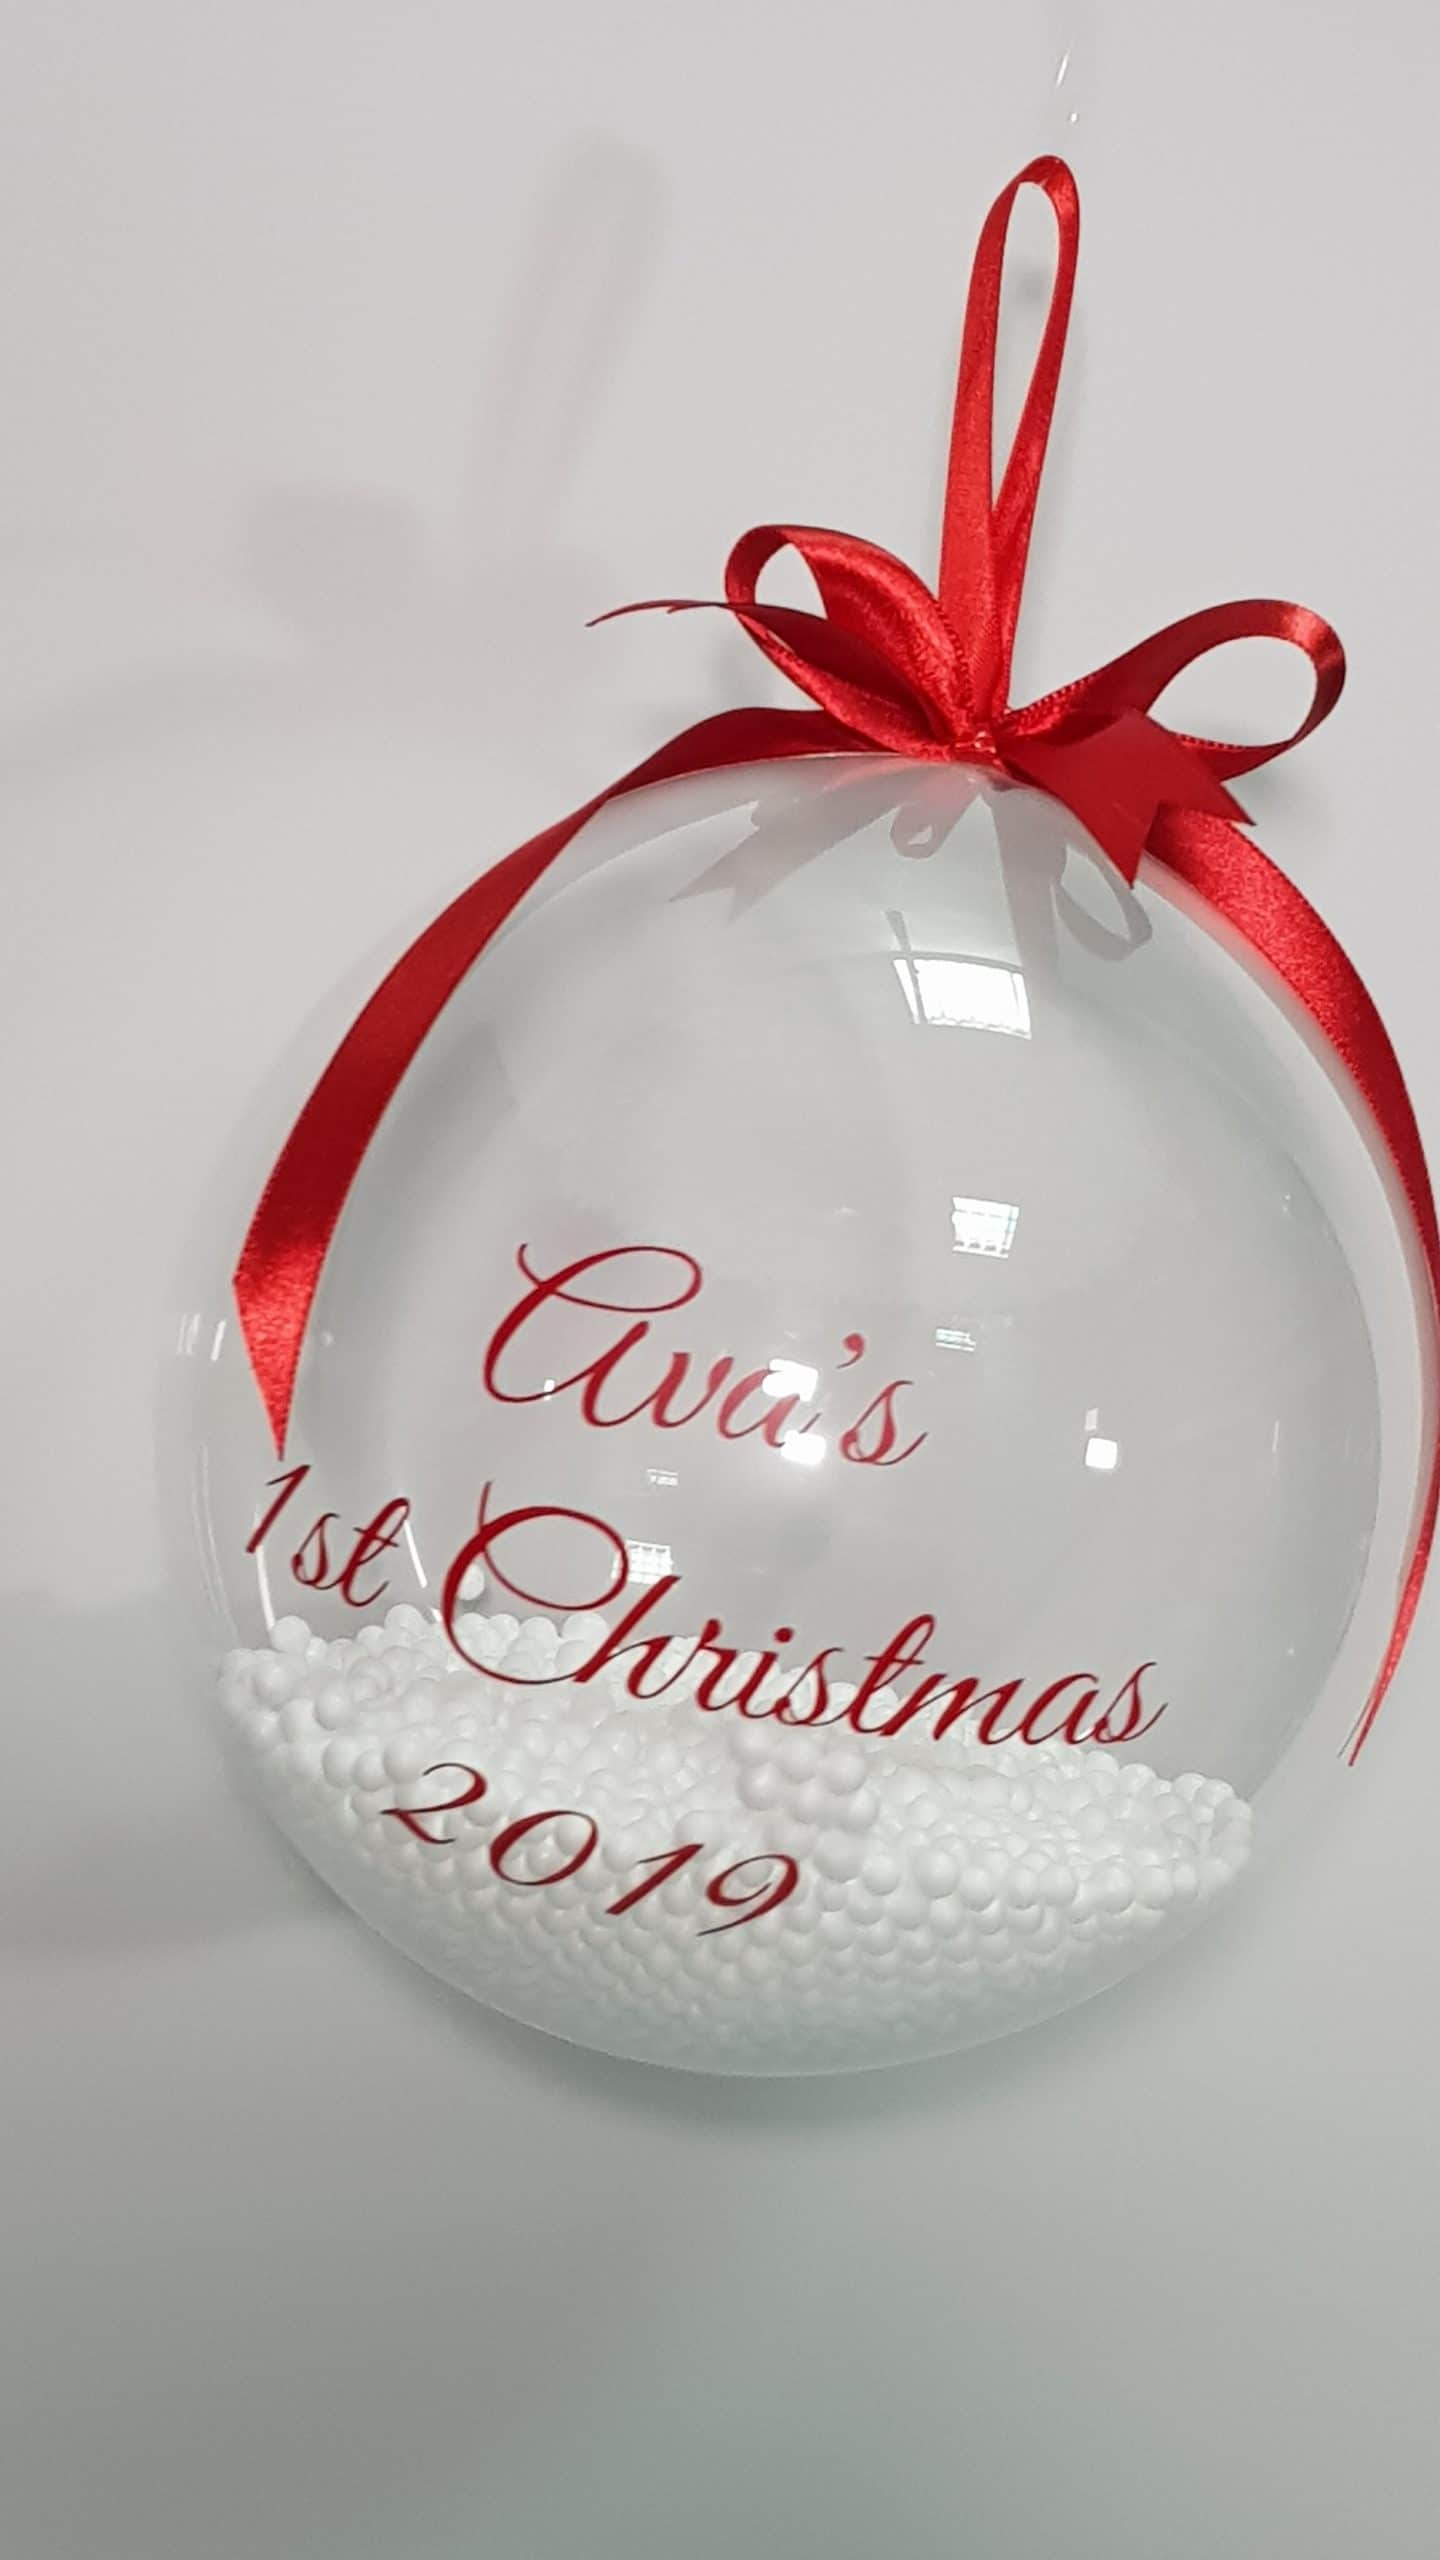 Personalised christmas bauble available from Cardiff Balloons